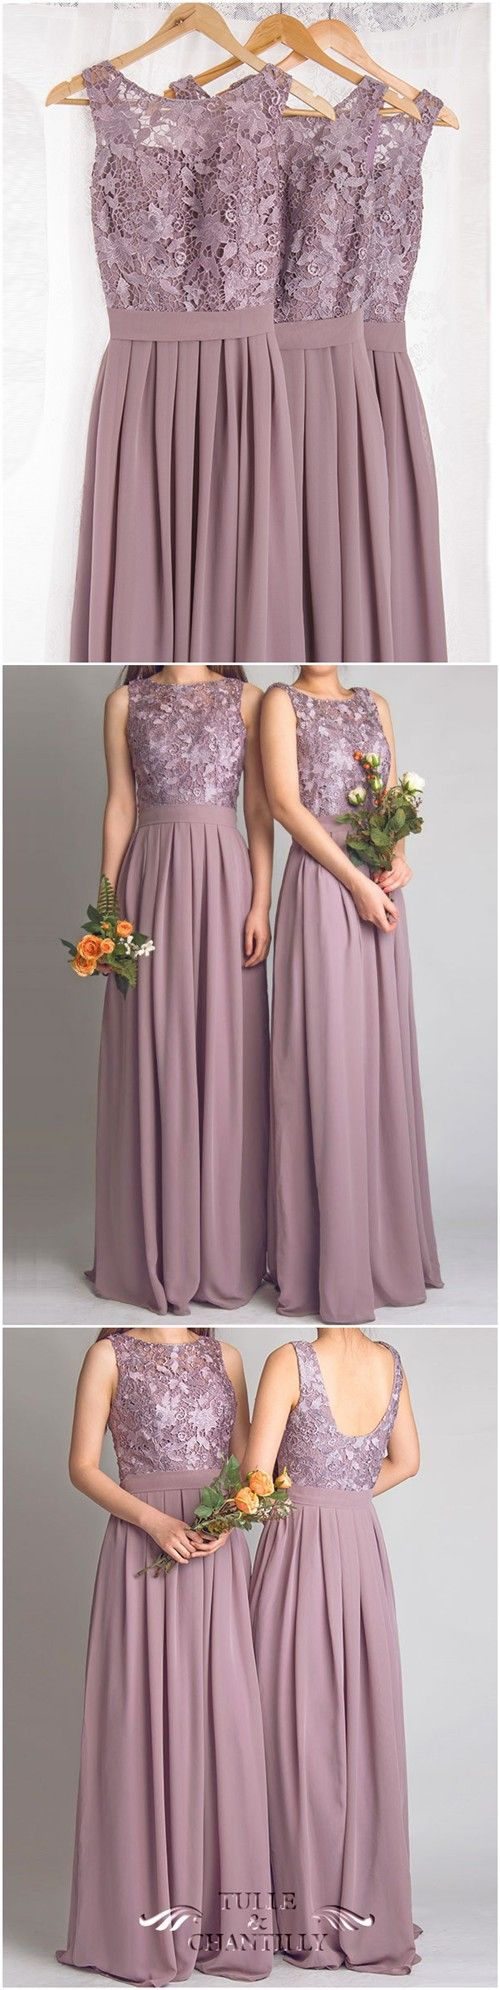 Best 20 vintage bridesmaid dresses ideas on pinterest vintage dramatic vintage lace bridesmaid dresses with flowing chiffon skirt ombrellifo Images